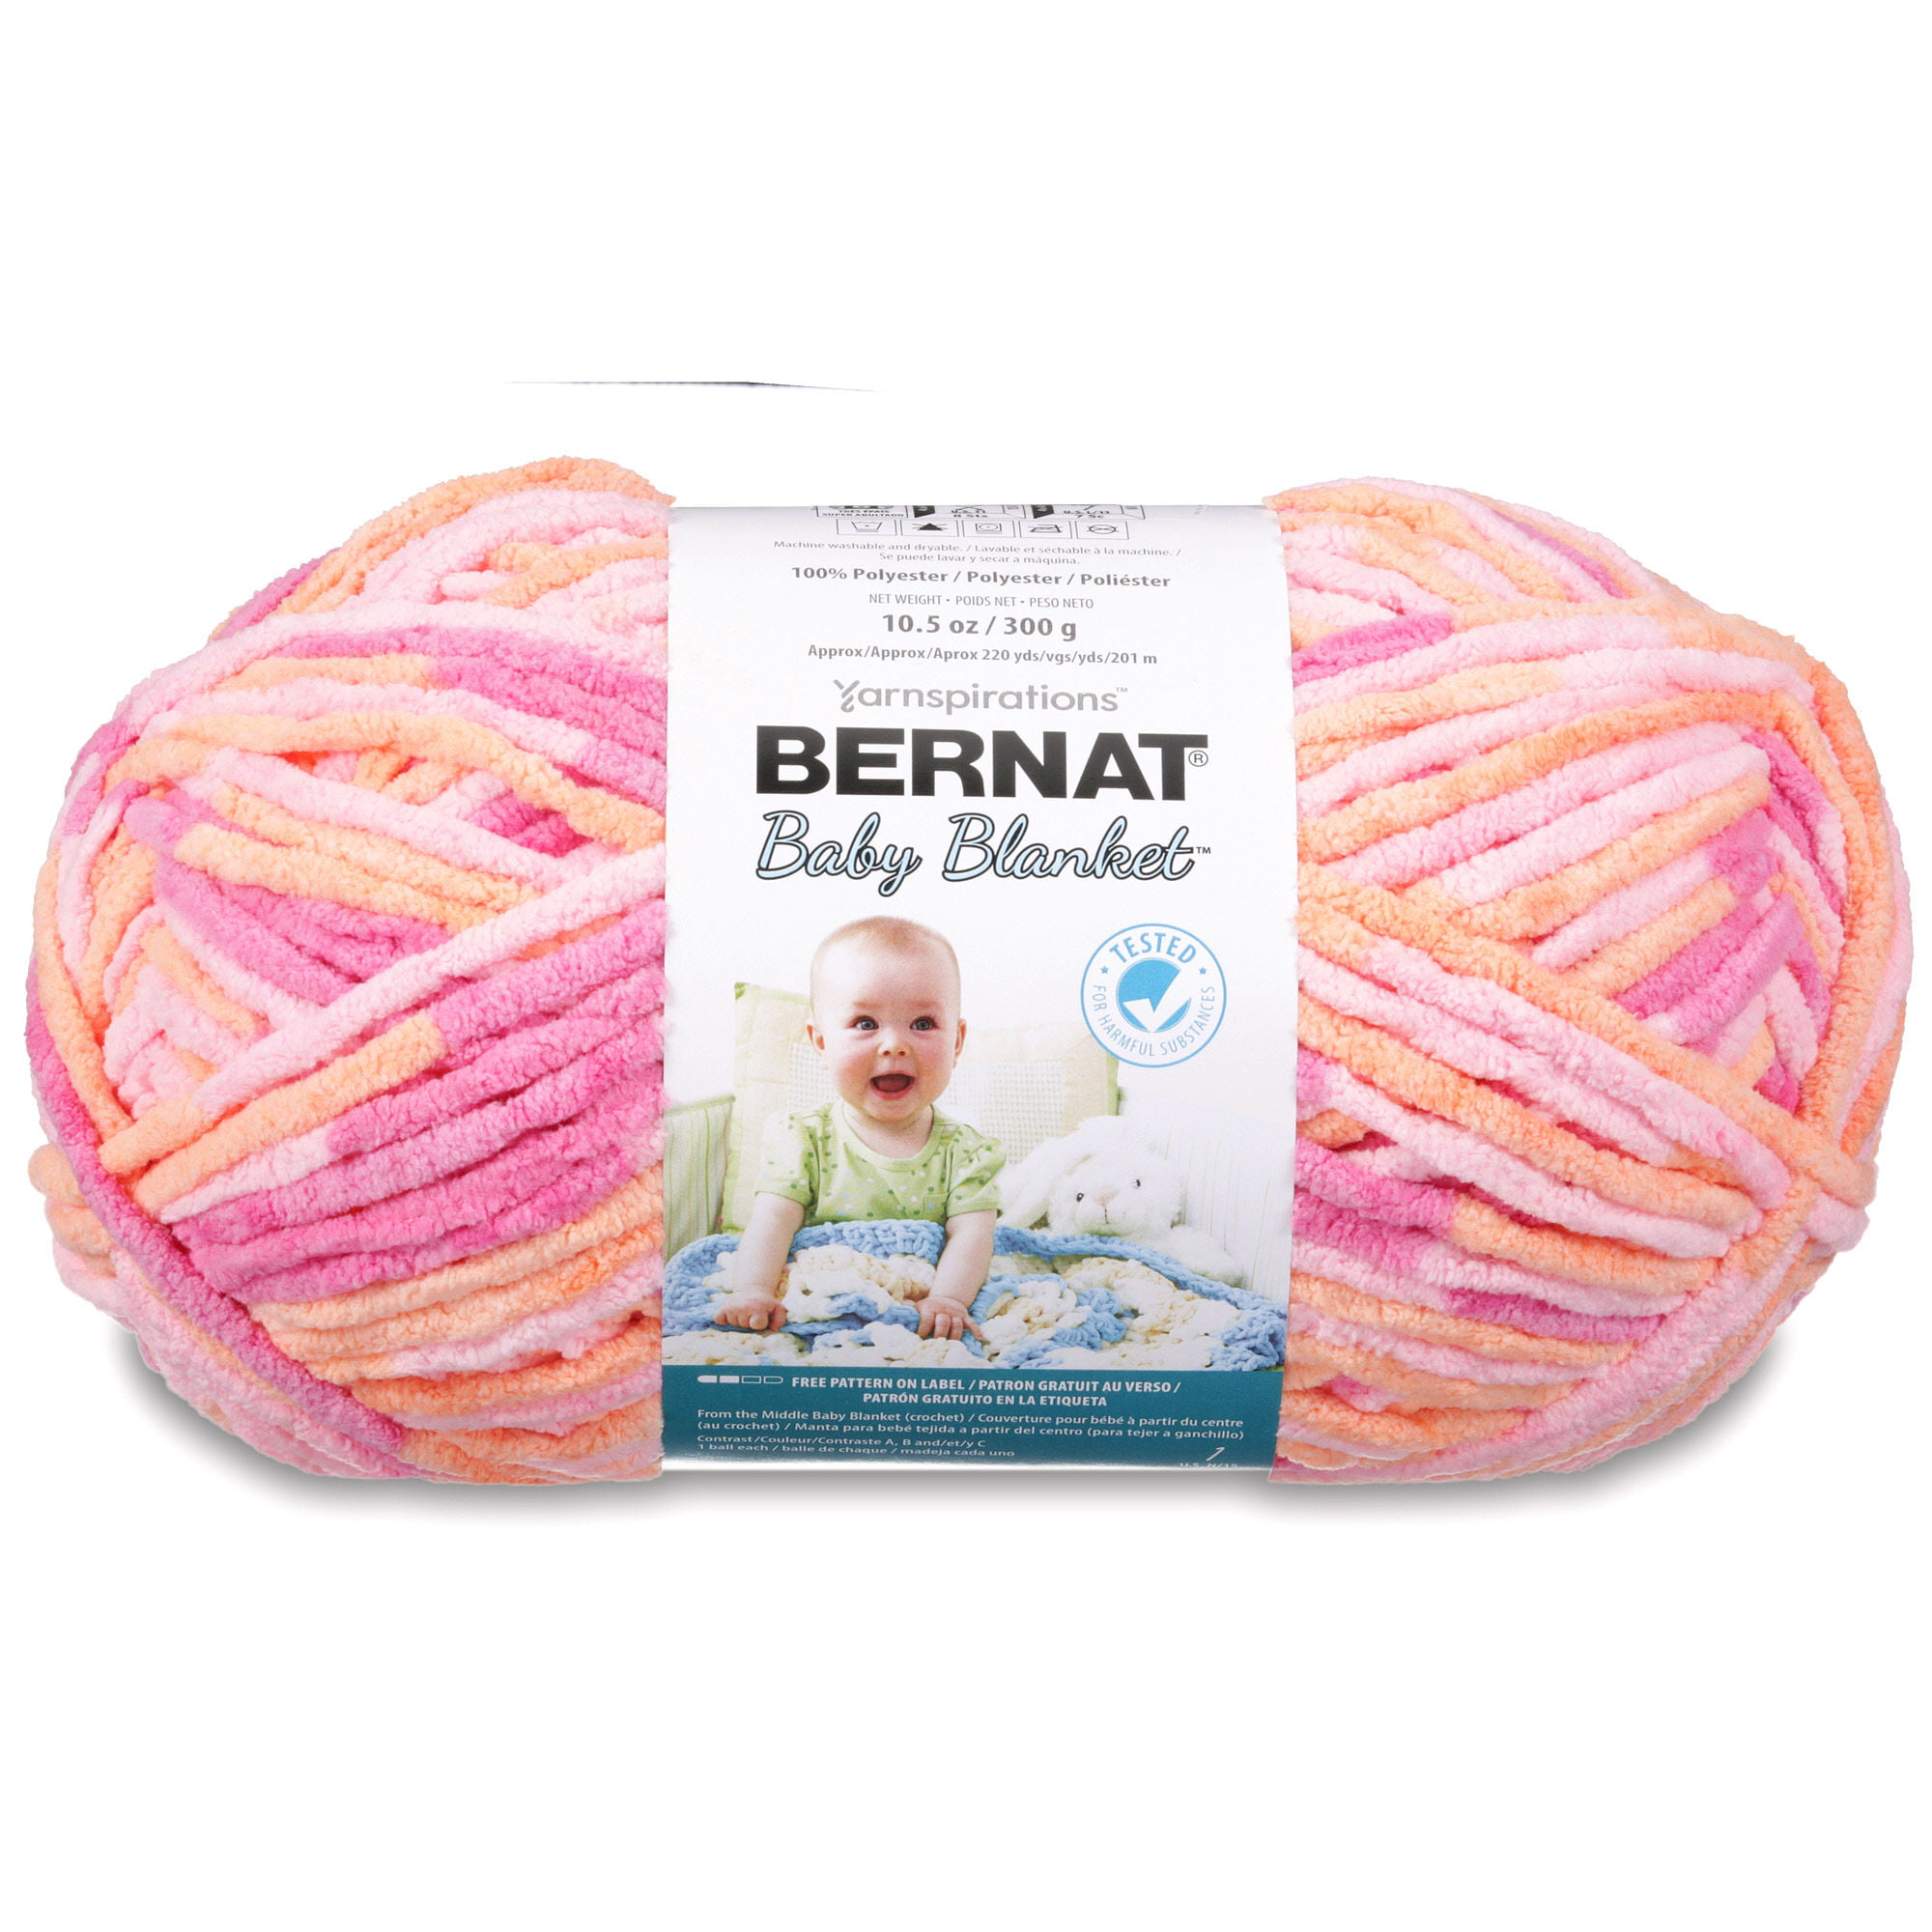 Bernat Baby Blanket Big Ball Yarn - Walmart.com